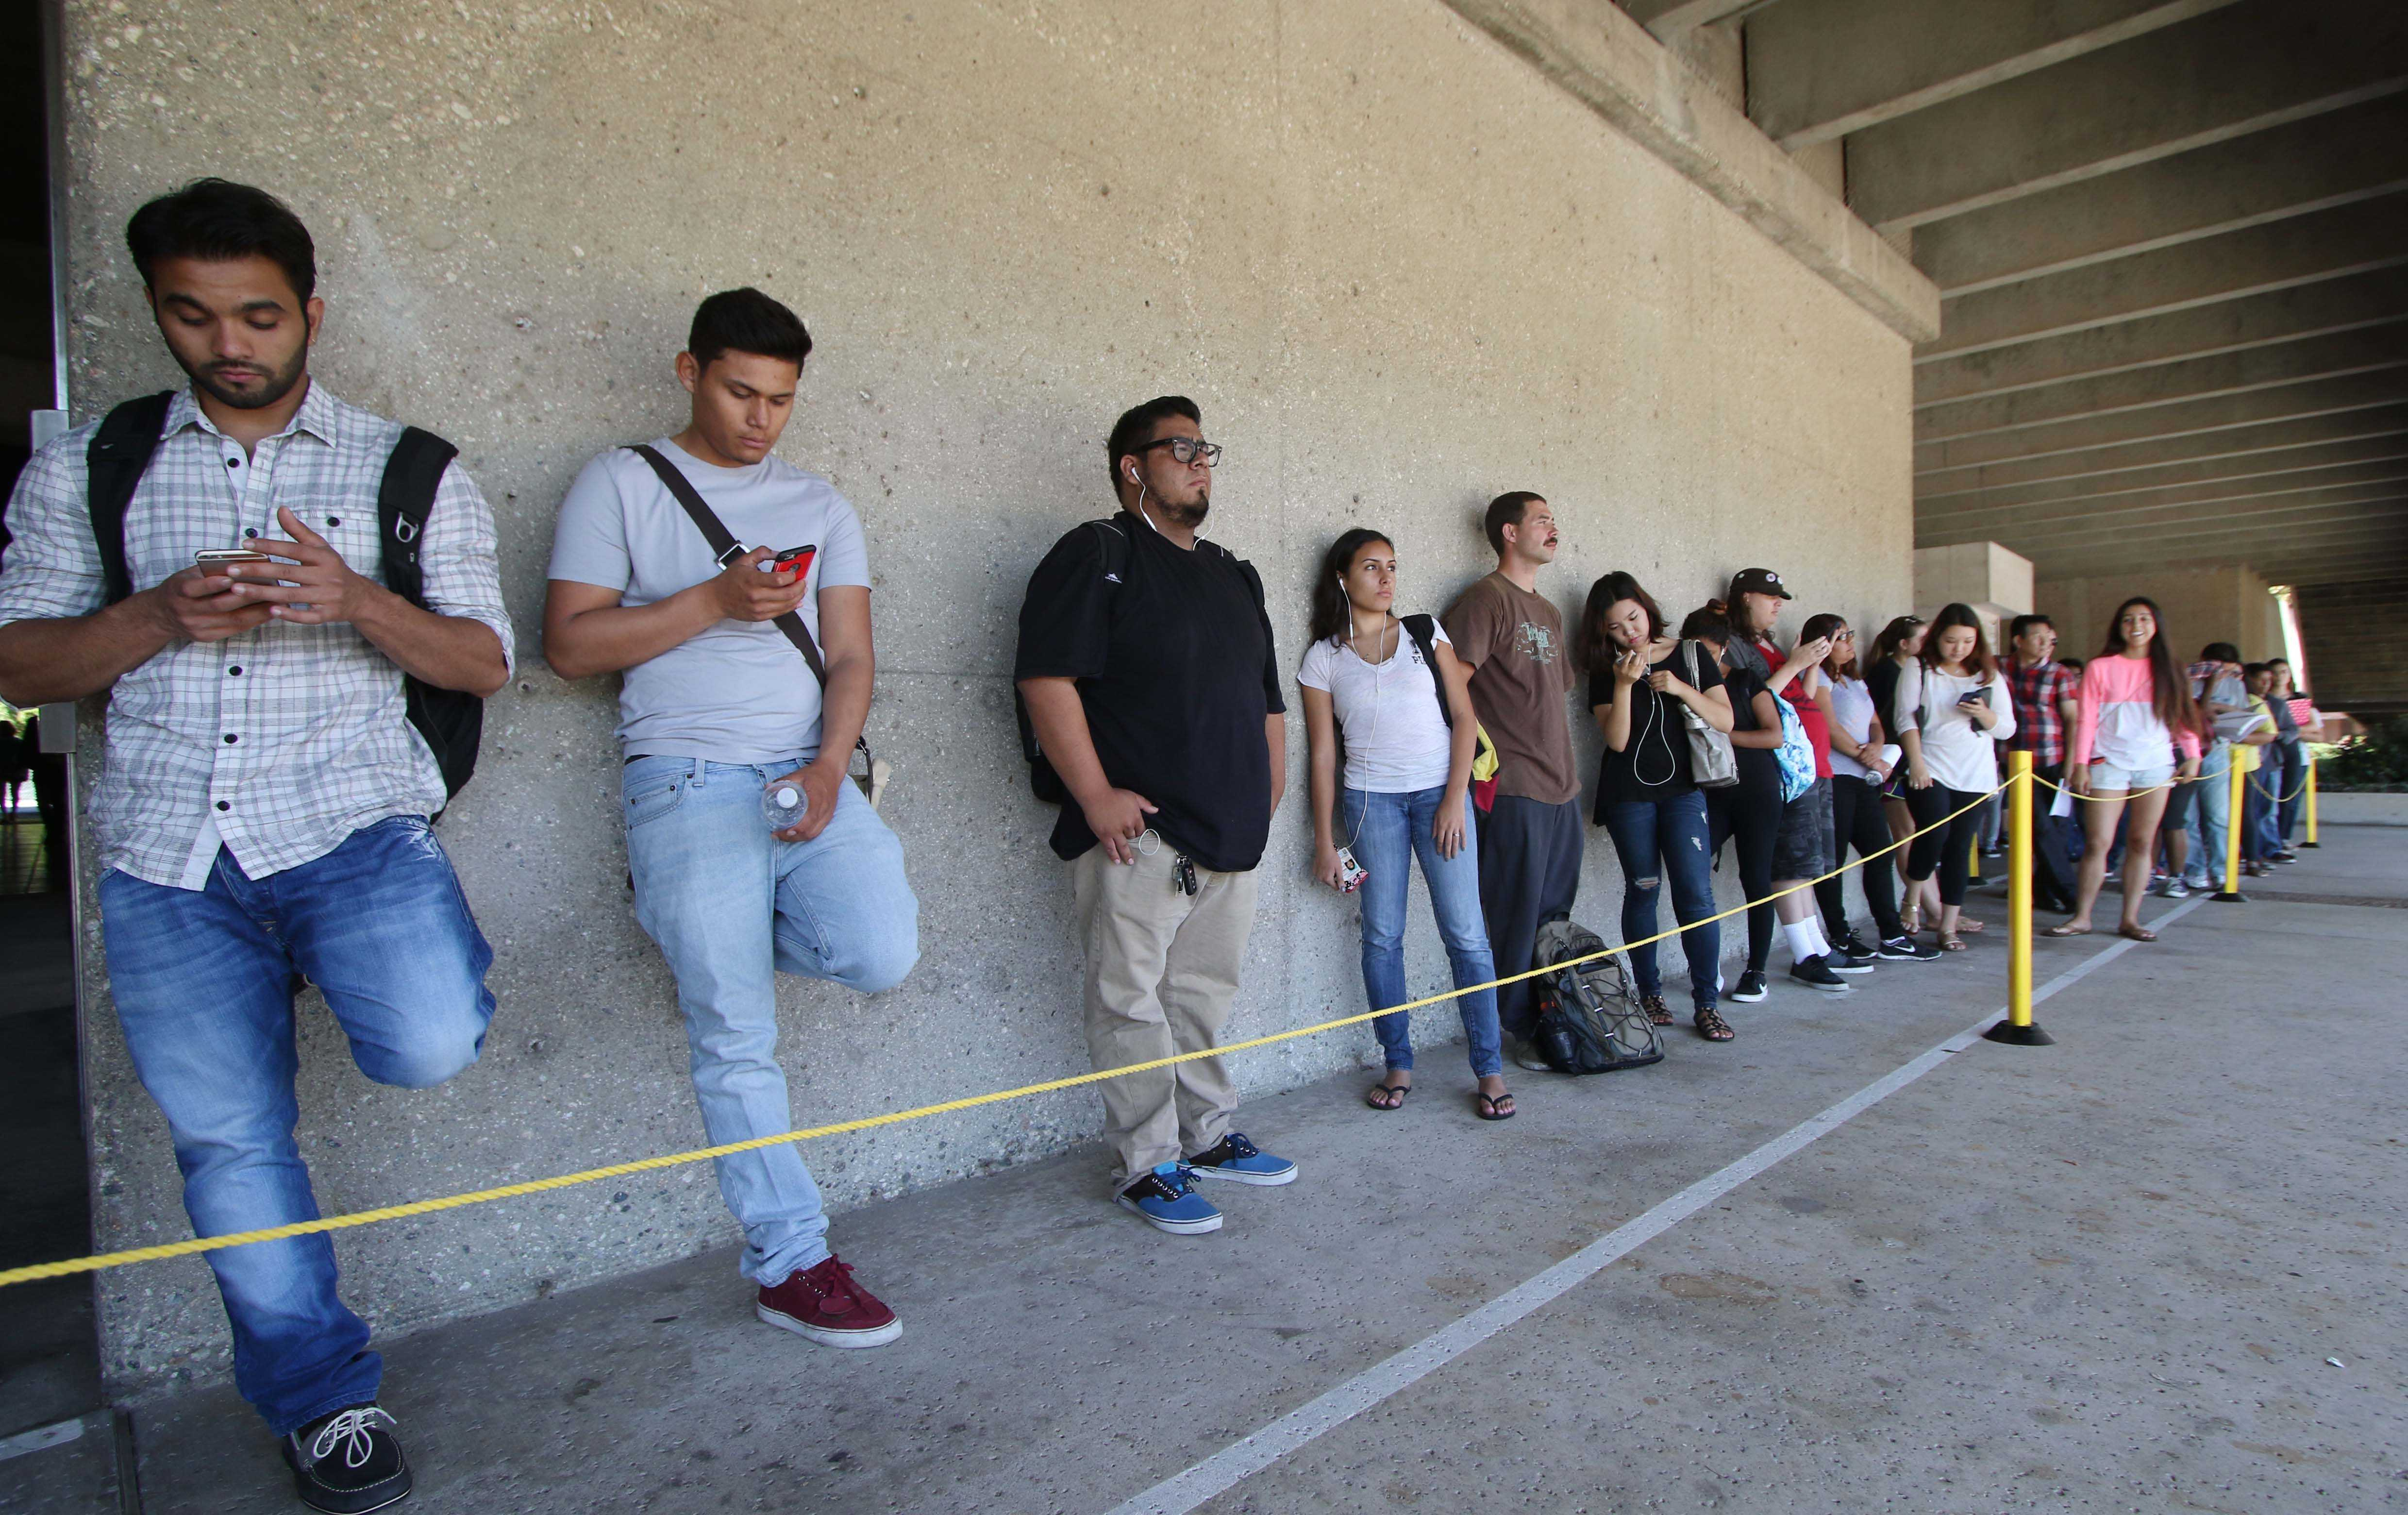 El Camino students wait in line for the Cashiers Office near the Bookstore on the first day of fall semester. Photo credit: Jorge Villa